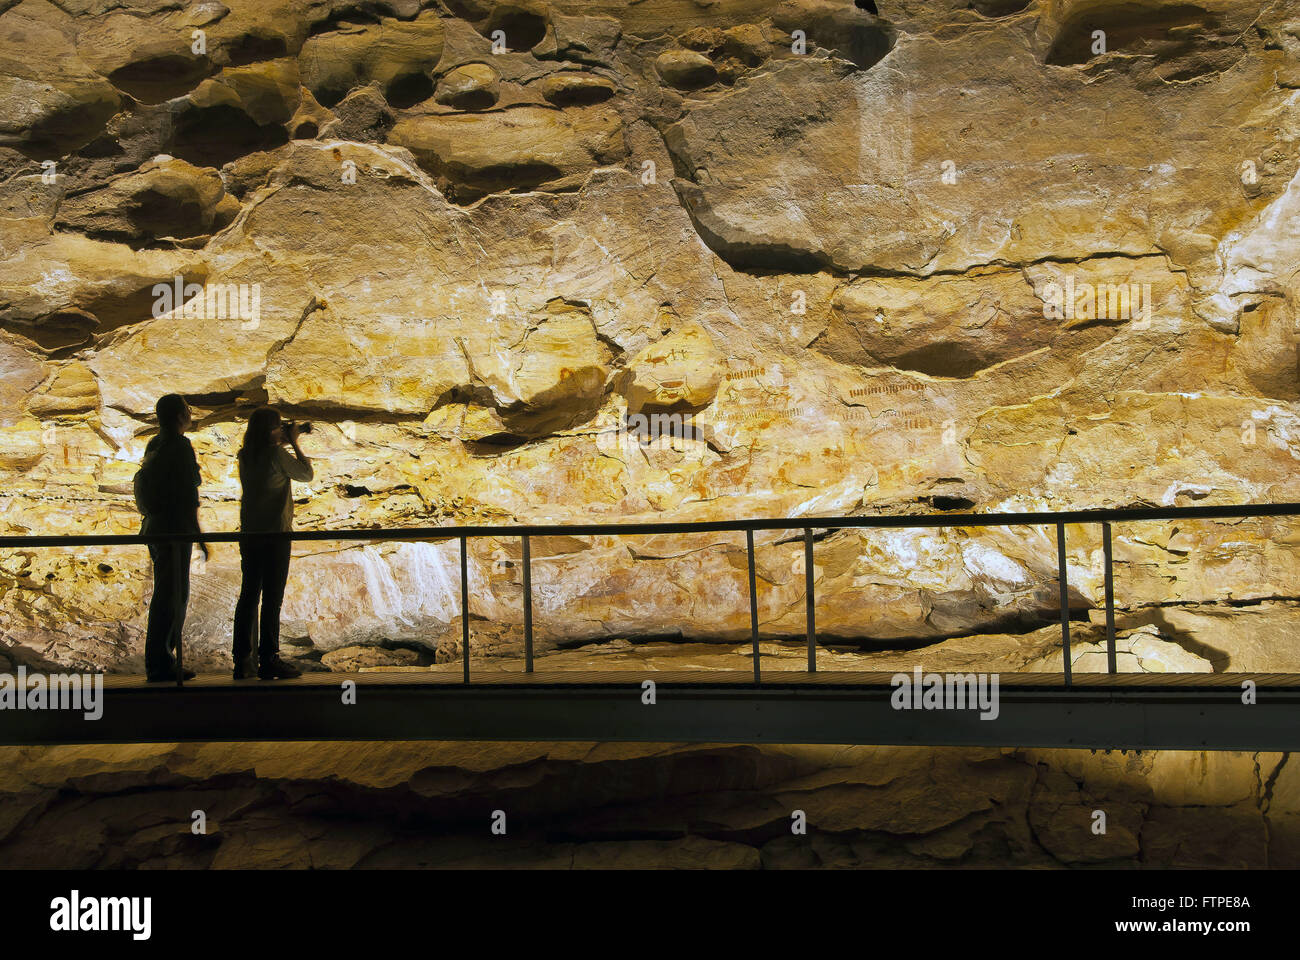 Catwalk for night time visits to the cave paintings in Boqueirao Holed Stone - Stock Image